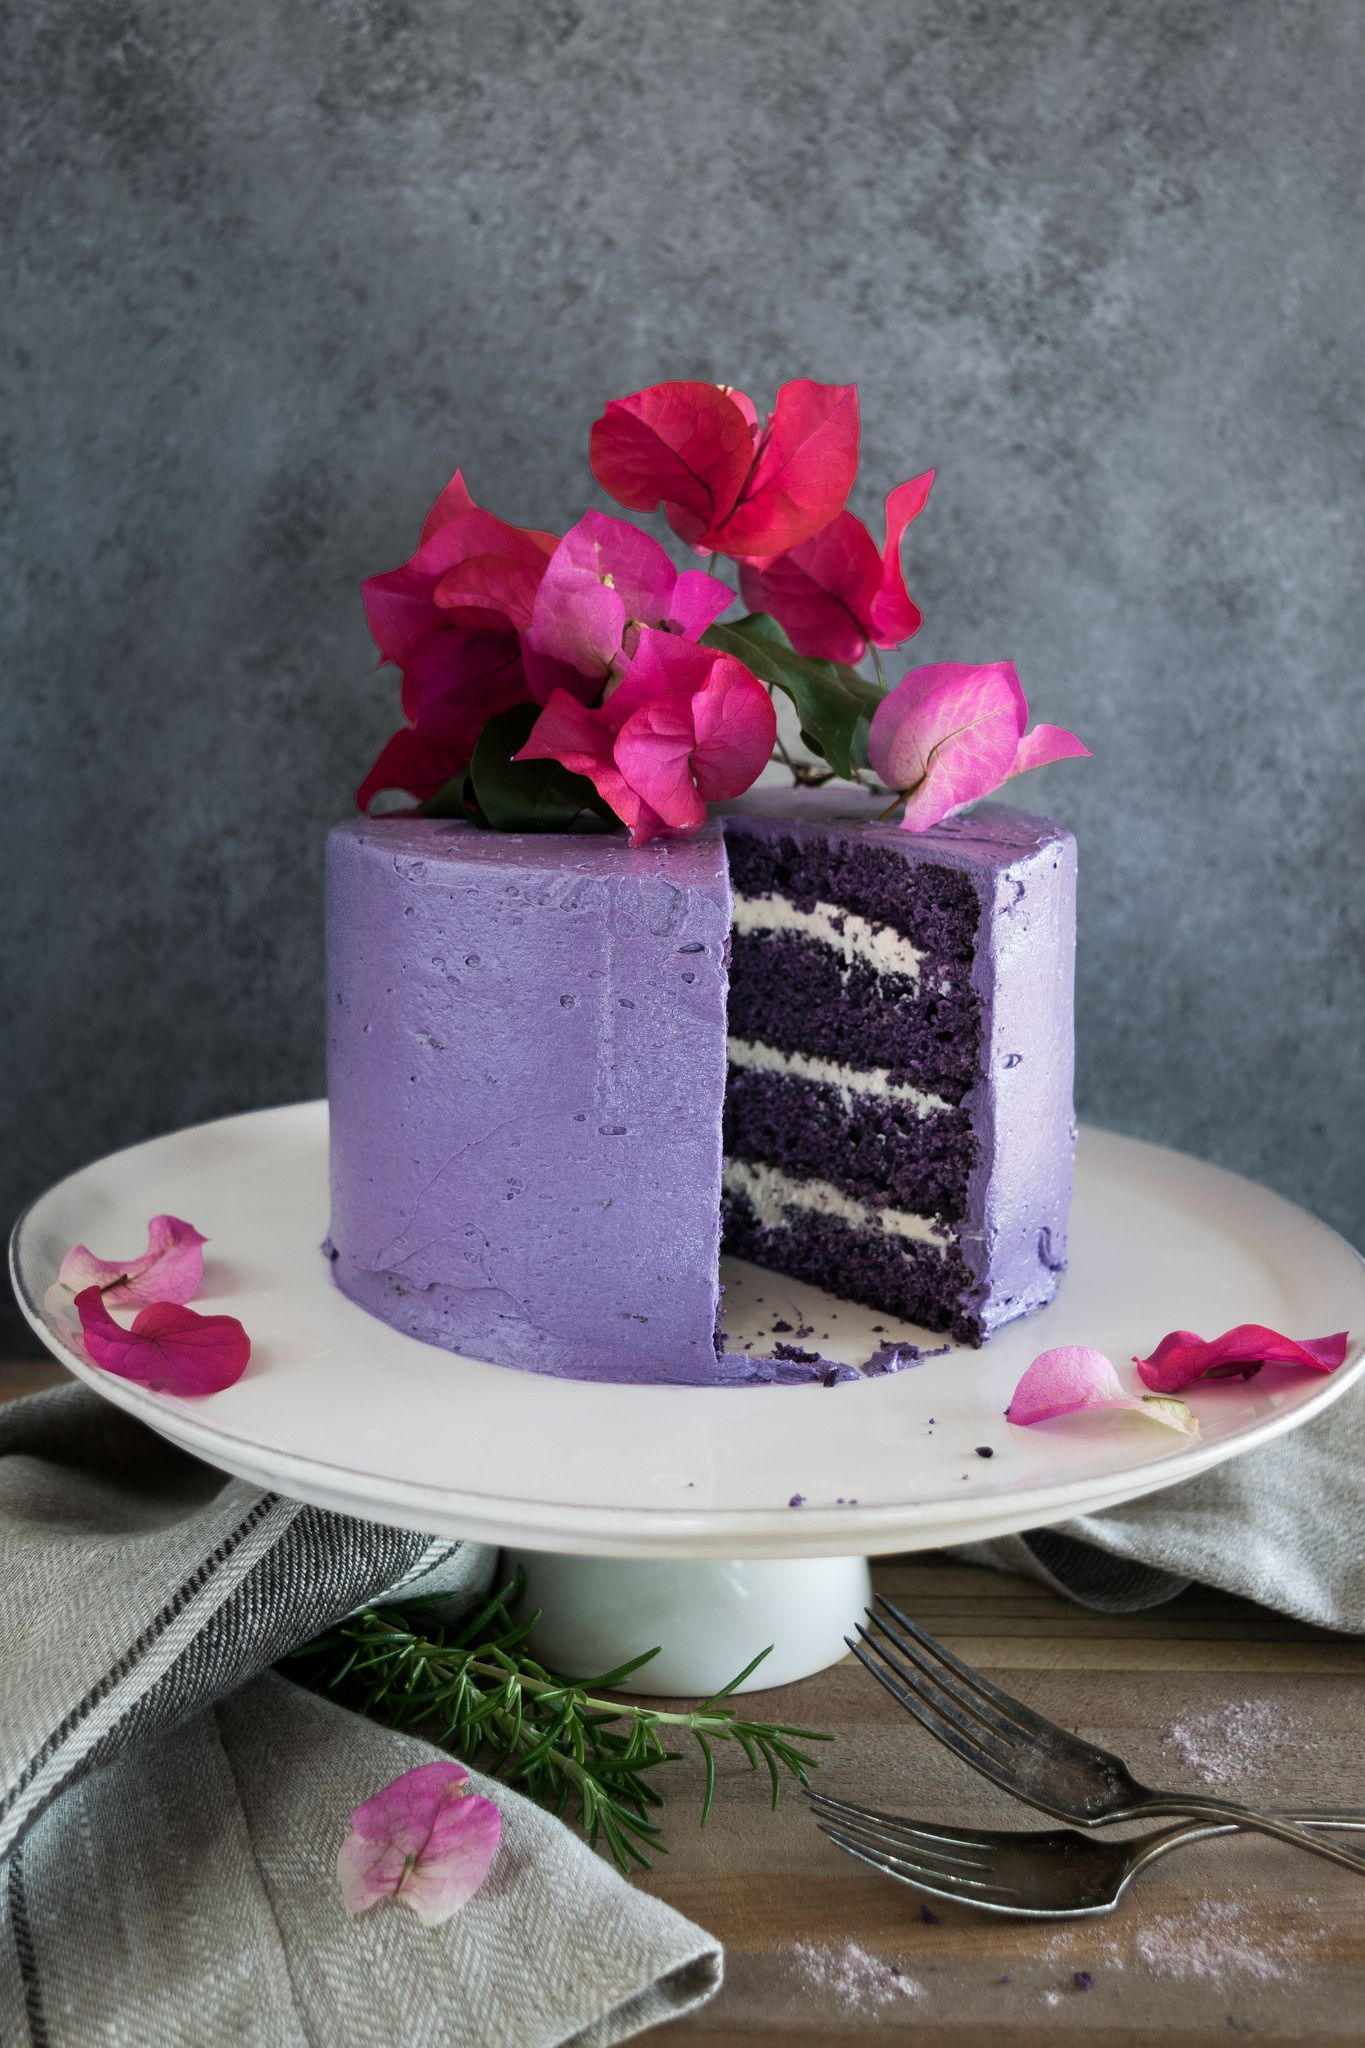 April 7, 2016 - A simple and delicious recipe for ube cake with vanilla marshmallow cream, a festive purple layer cake from Husbands that Cook